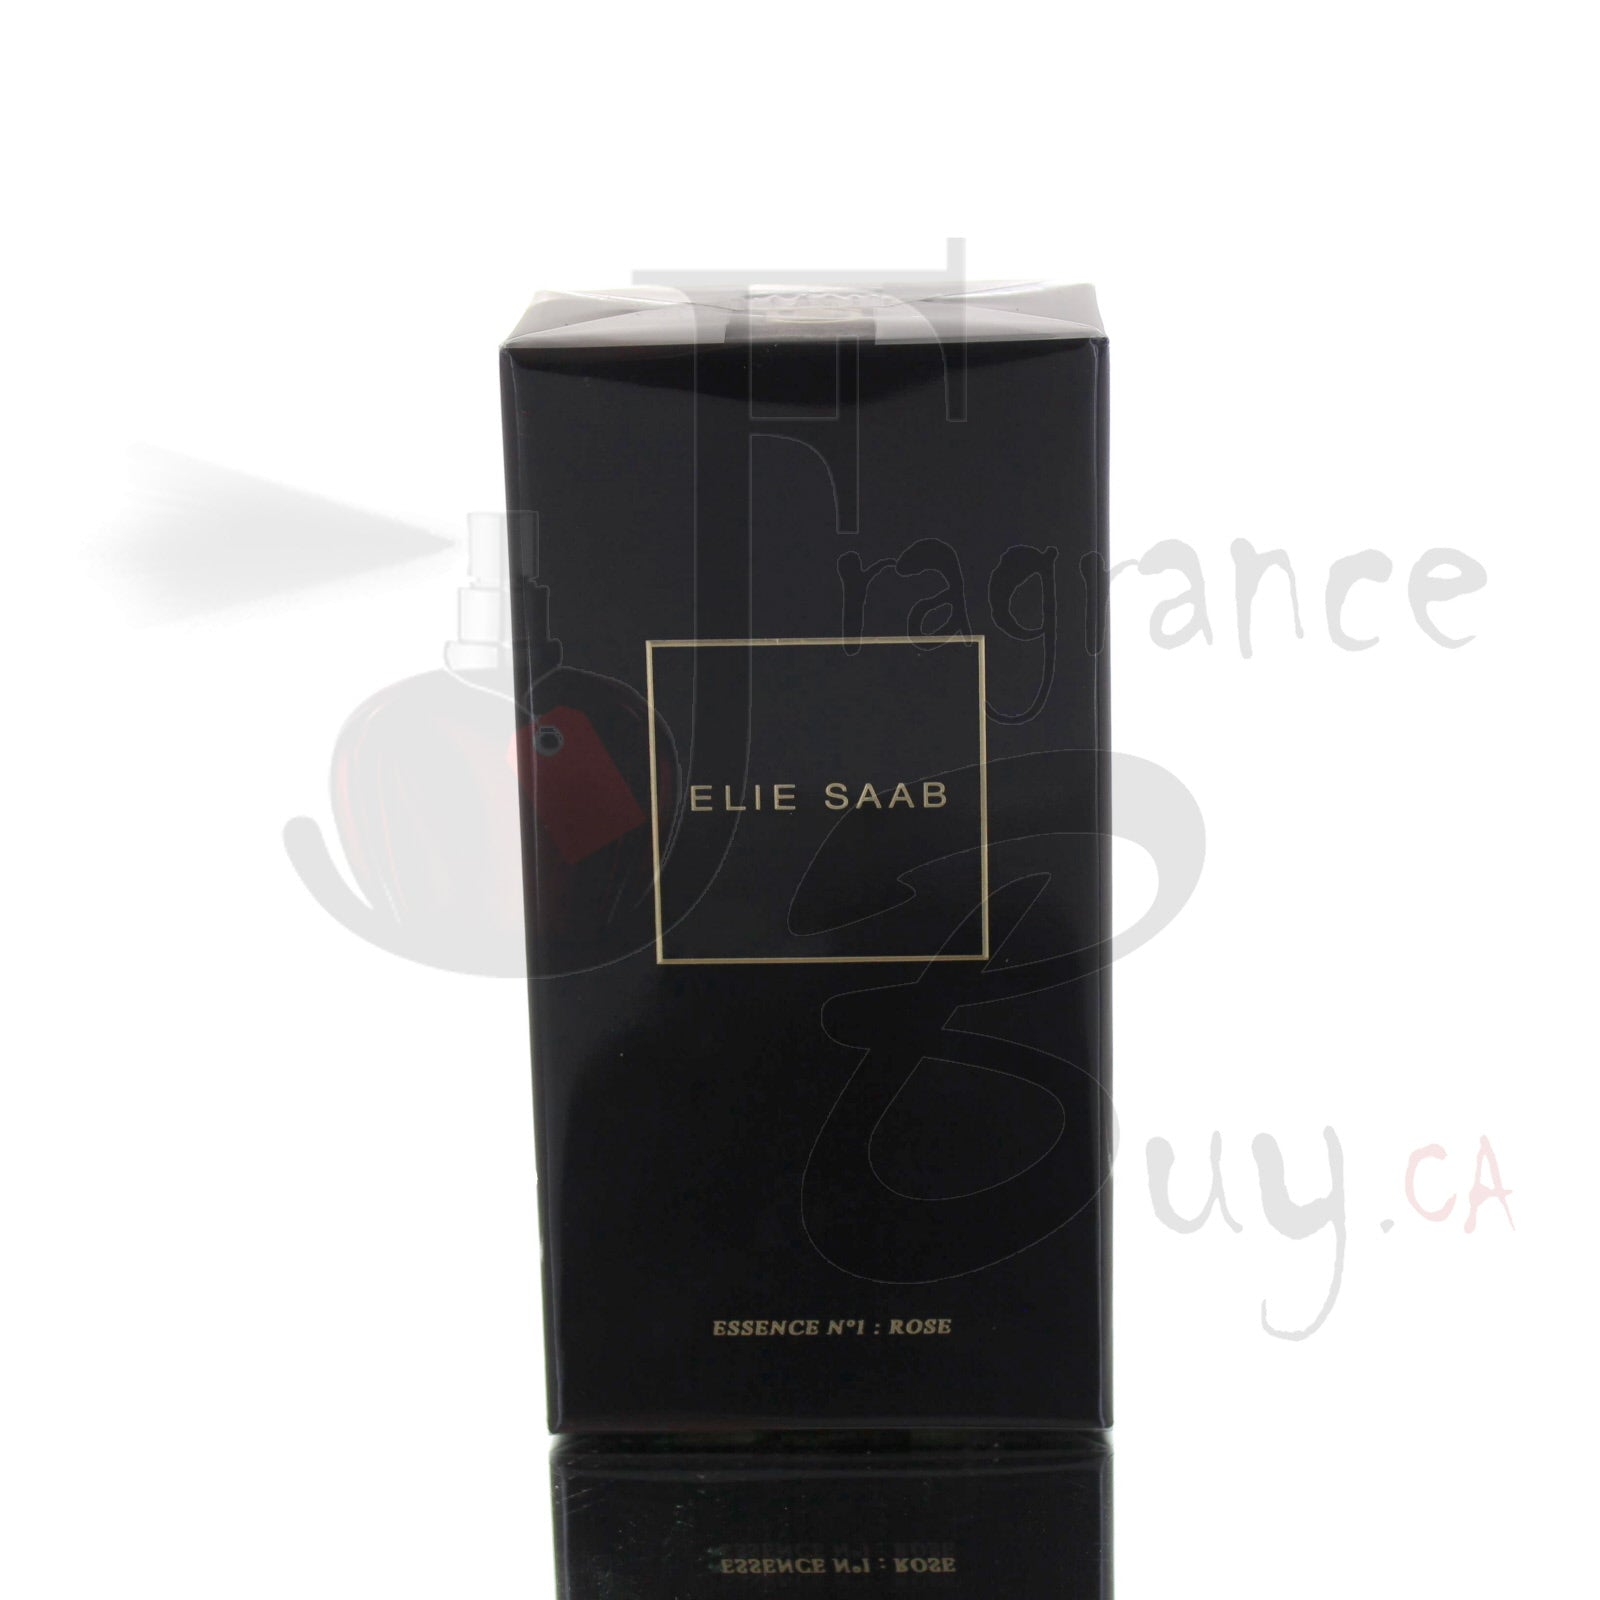 Elie Saab Essence No.1 Rose For Man/Woman